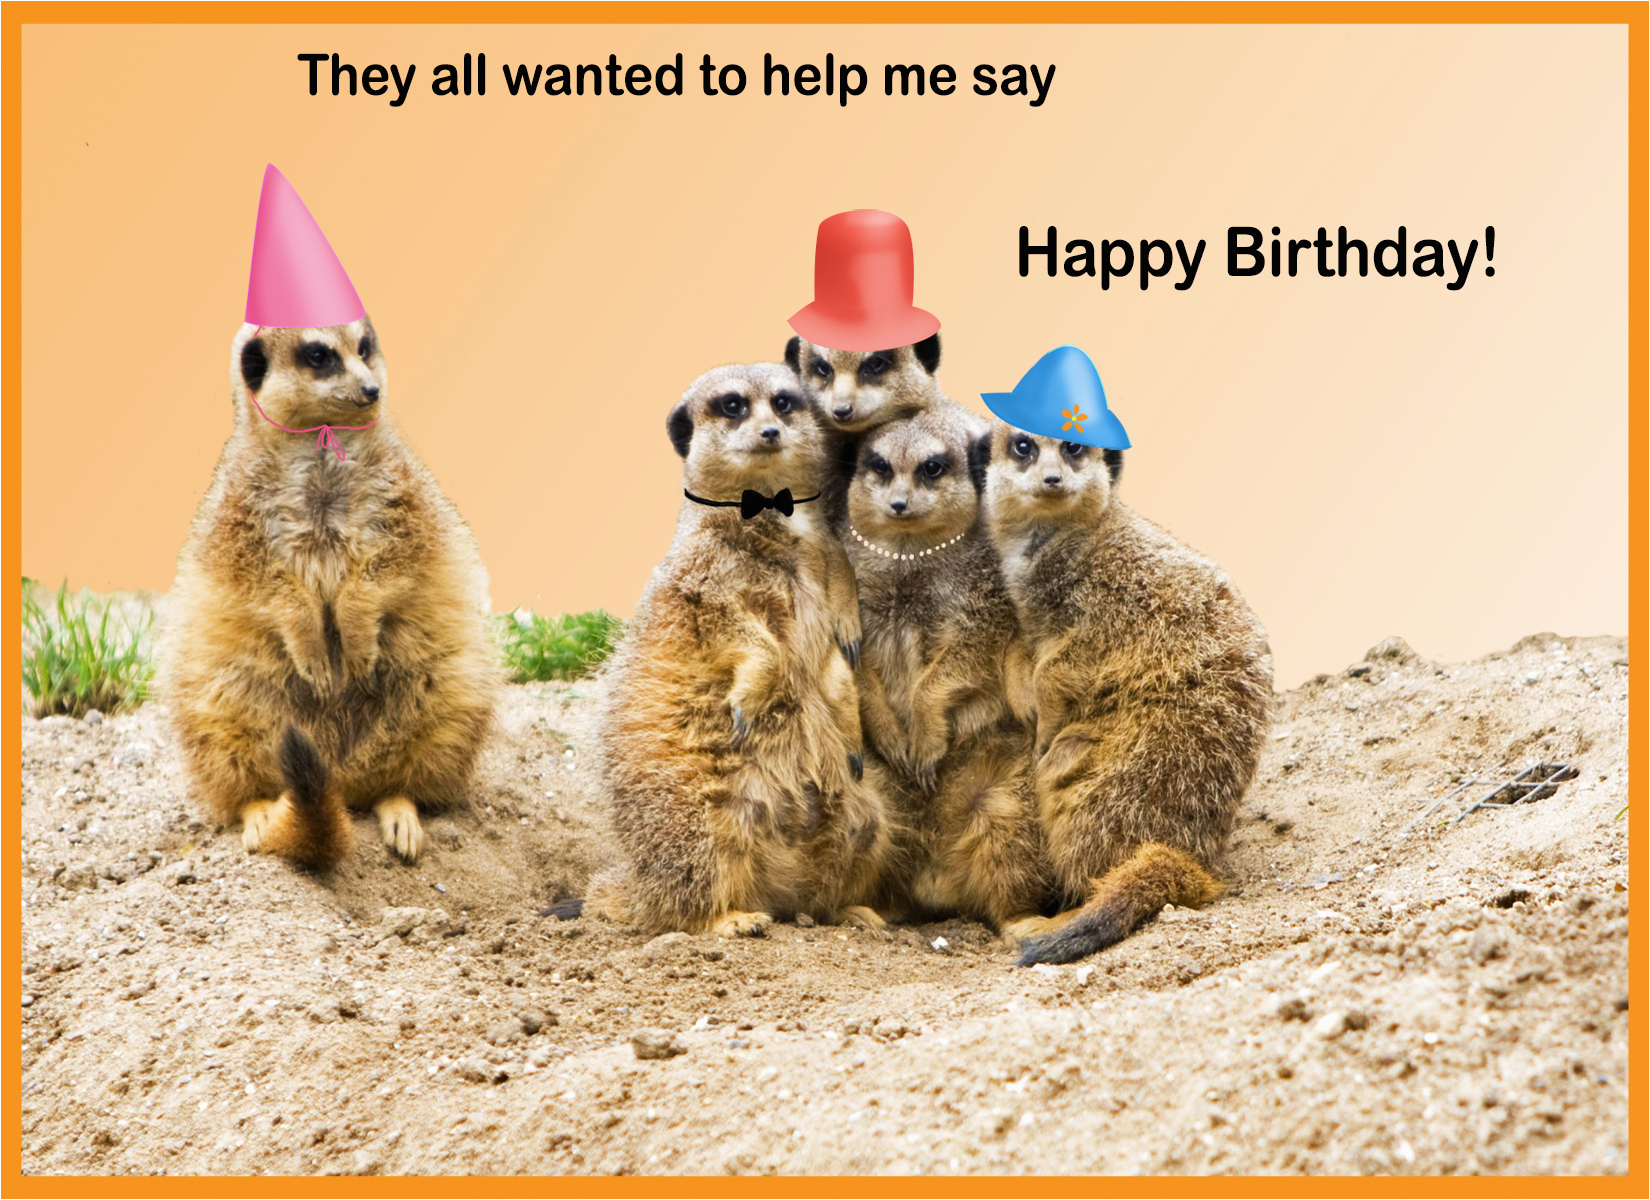 happy birthday cards with animals